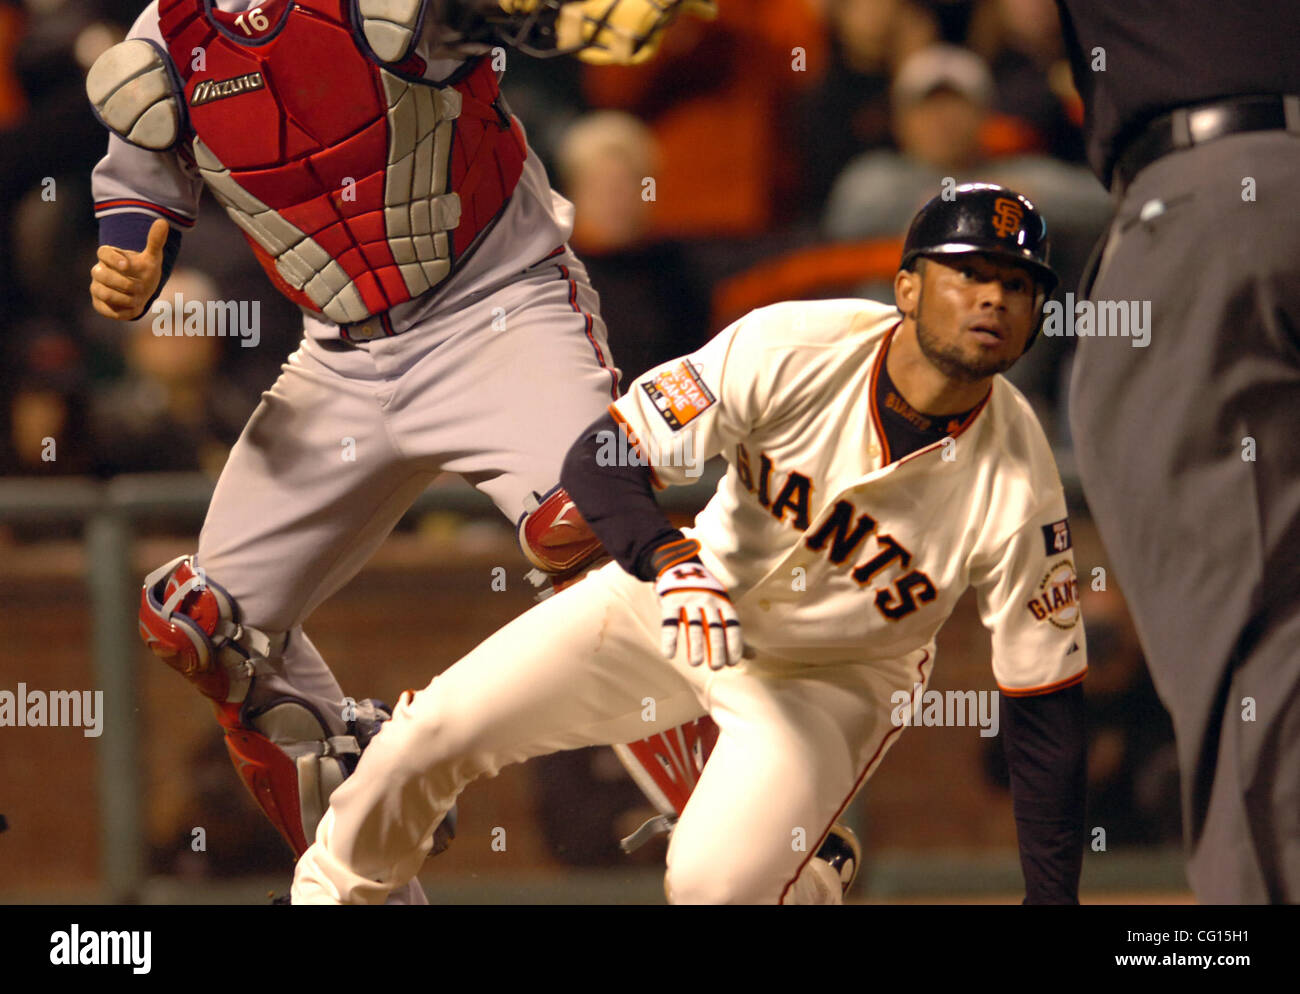 Pedro Feliz Of The San Francisco Giants Awaits A Safe Call From Home Plate Umpire Bruce